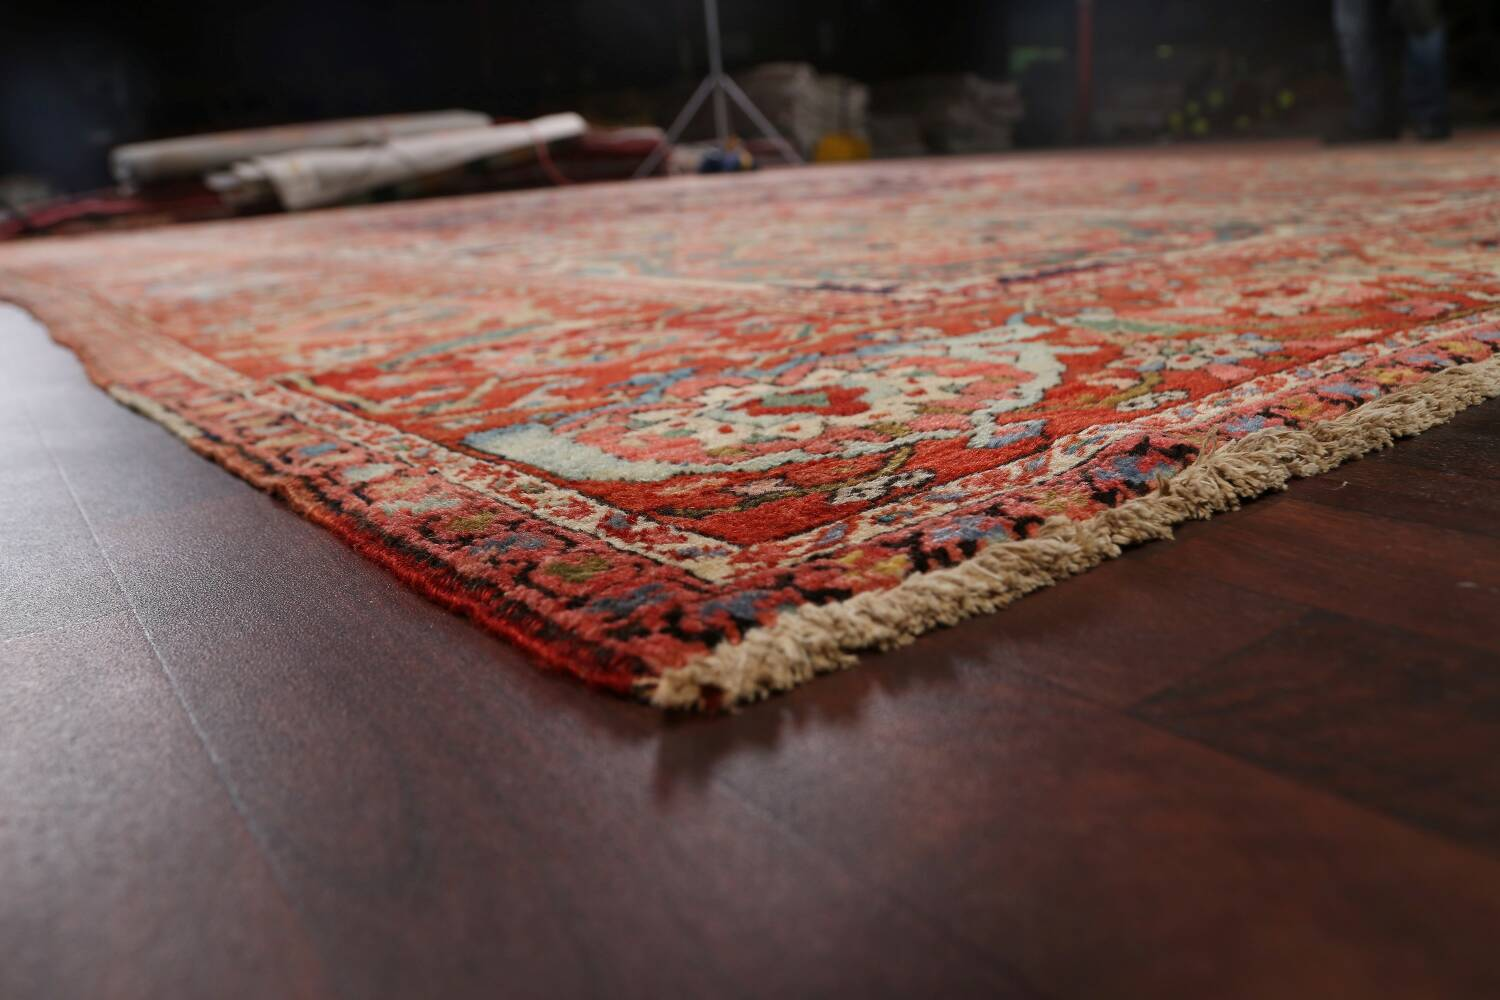 Antique Heriz Serapi Vegetable Dye Persian Area Rug 12x19 image 6